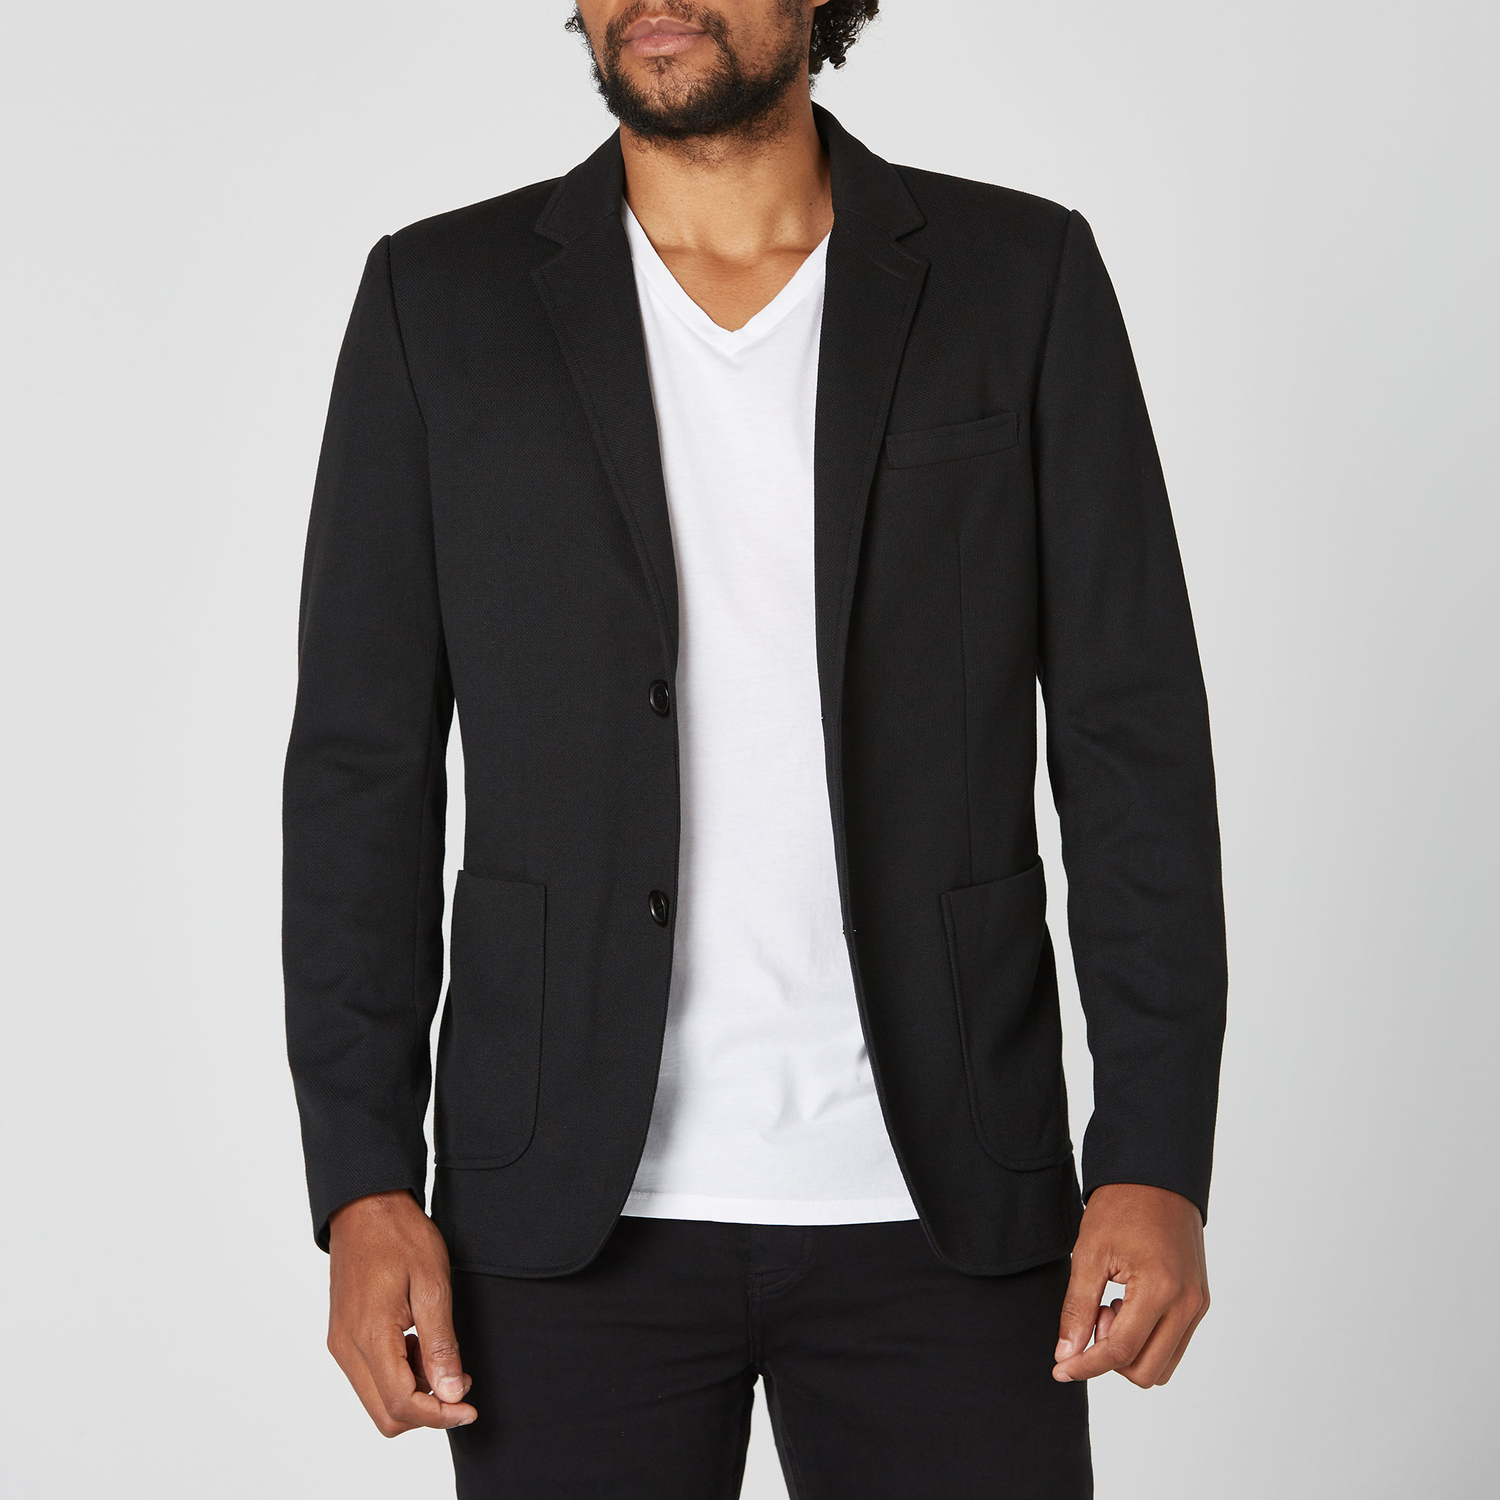 Discussion on this topic: 10 Of The Best Men's Statement Blazers, 10-of-the-best-mens-statement-blazers/